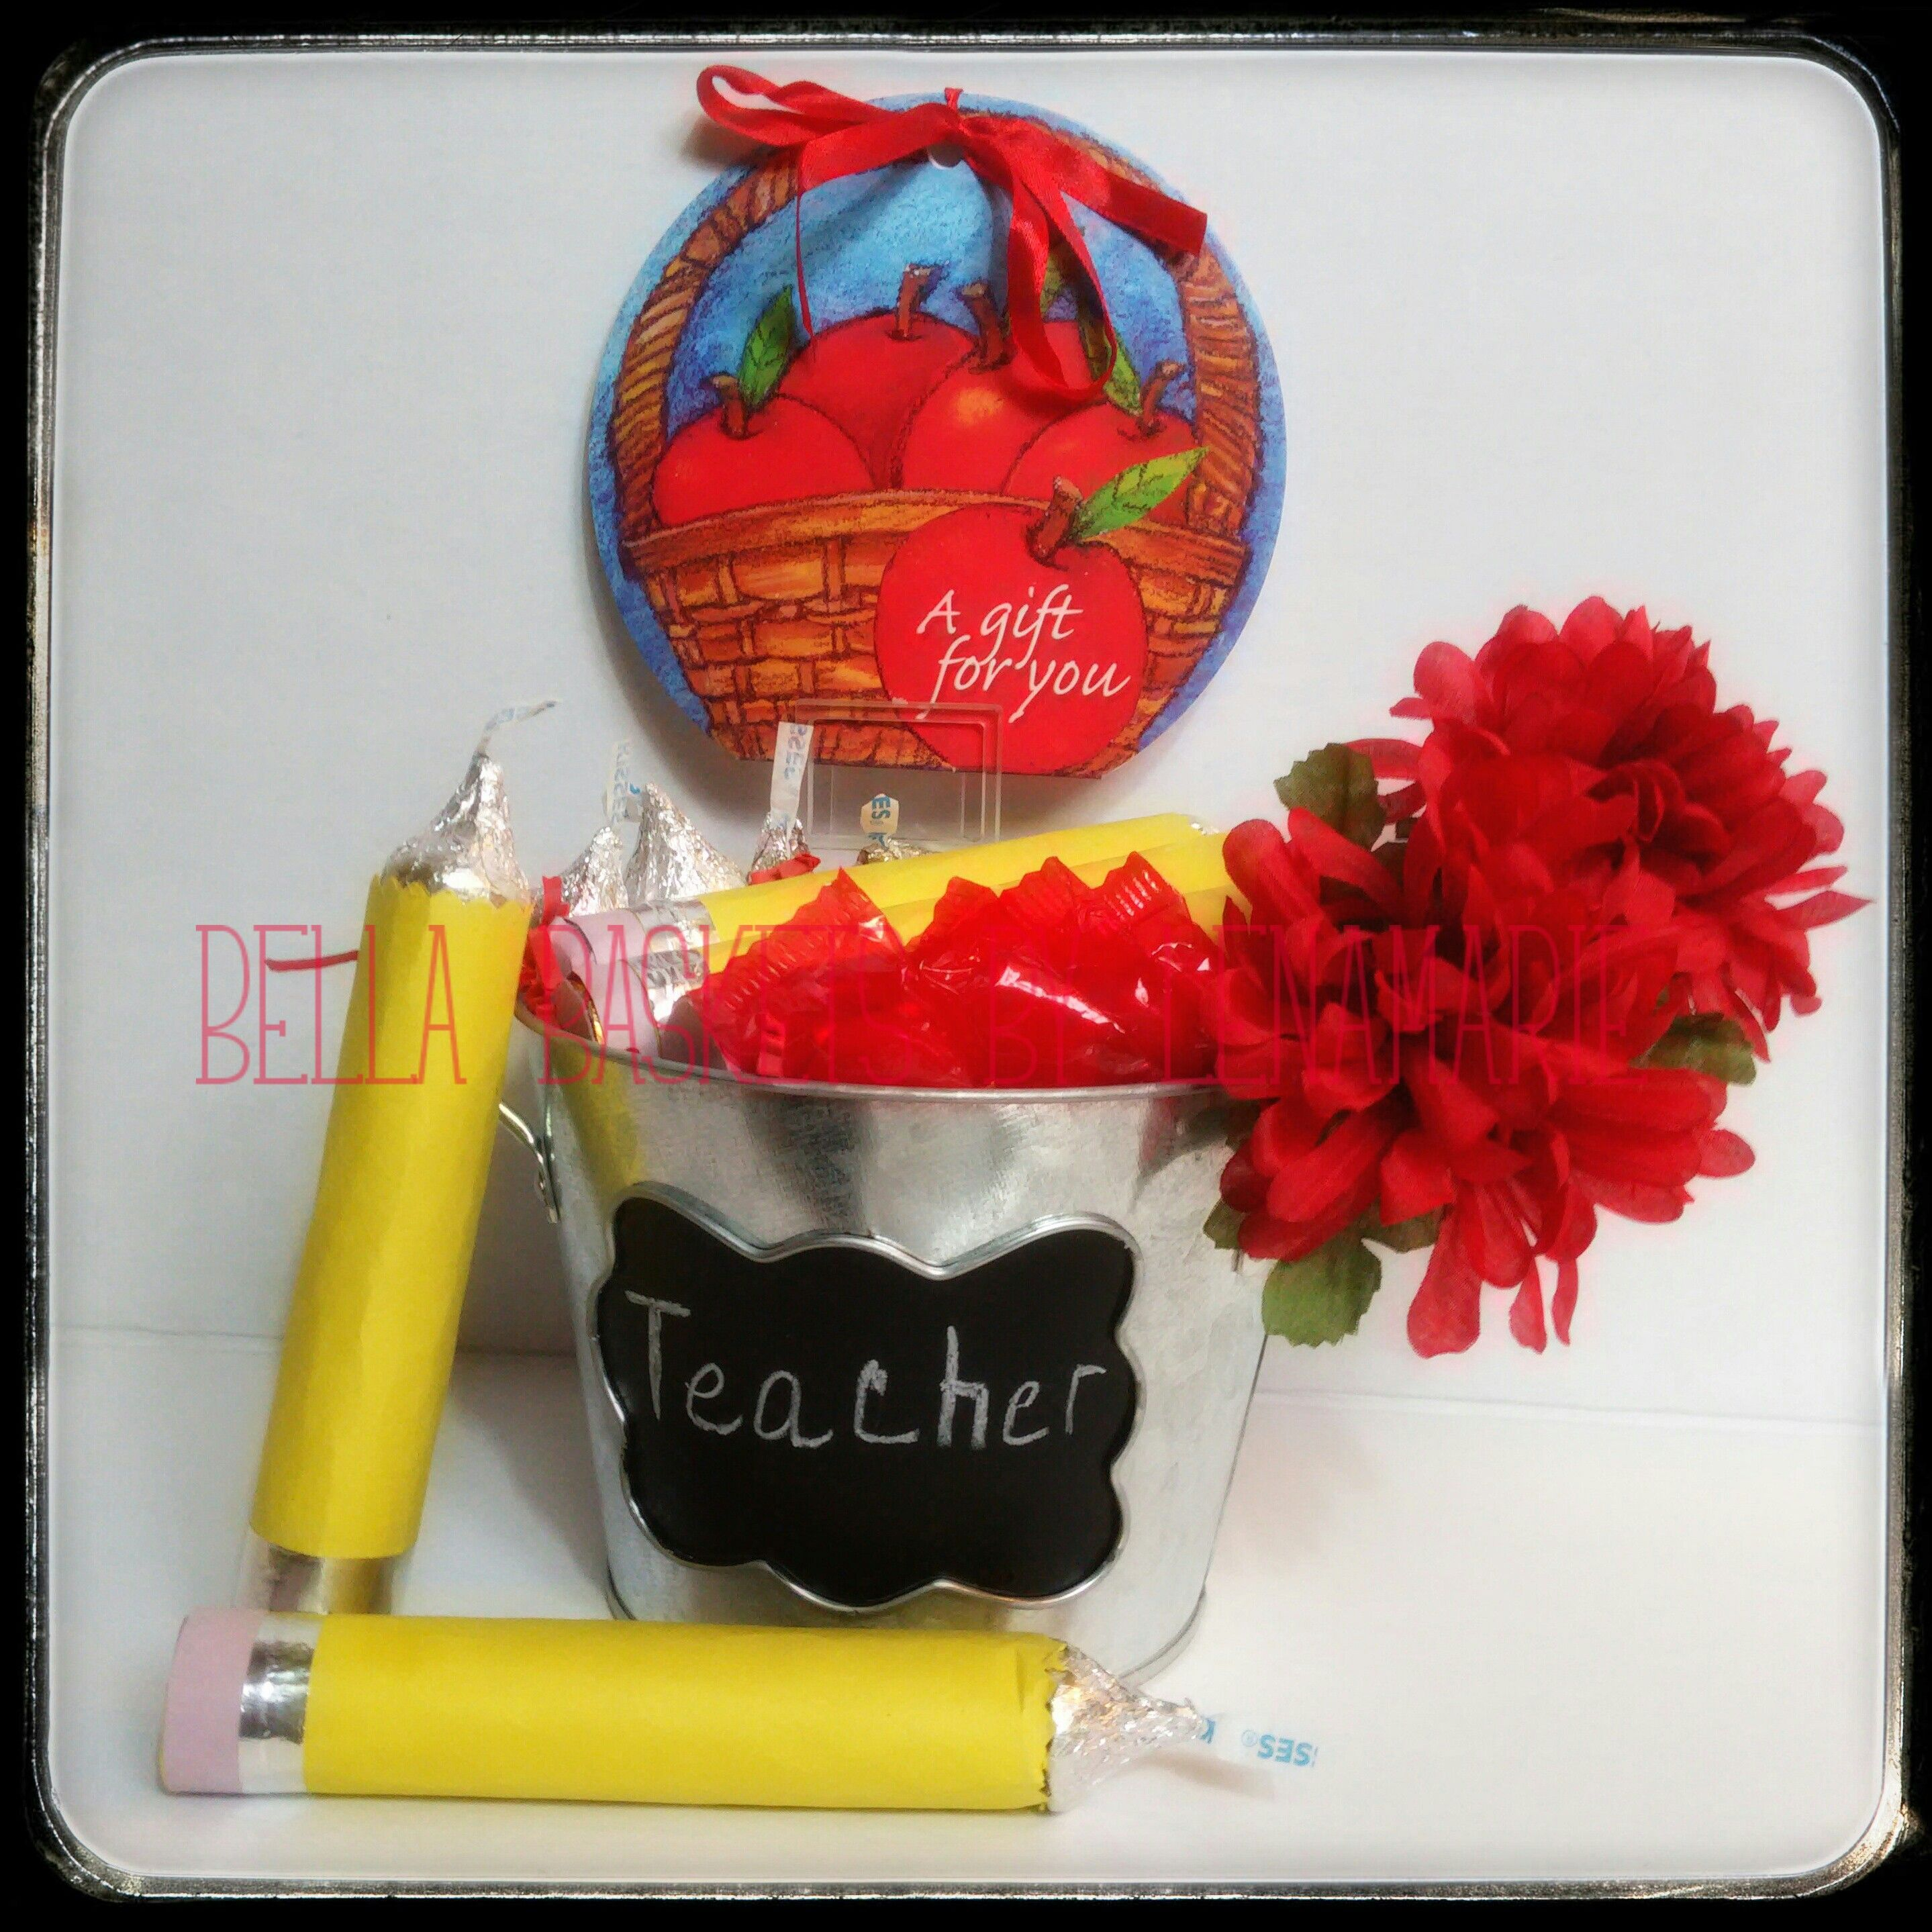 No #1 Teacher Teacher Appreciation Week May 2nd - 6th, 2016 Includes: 3 Rolo Chocolate Pencils, Cinnamon Discs and Hershey Kisses all tucked inside a Metal Chalkboard Pail. Perfect pencil/pen bucket once the candy is gone.  $24.98 Bella Baskets by Lenamarie  bellabaskets@mail.com